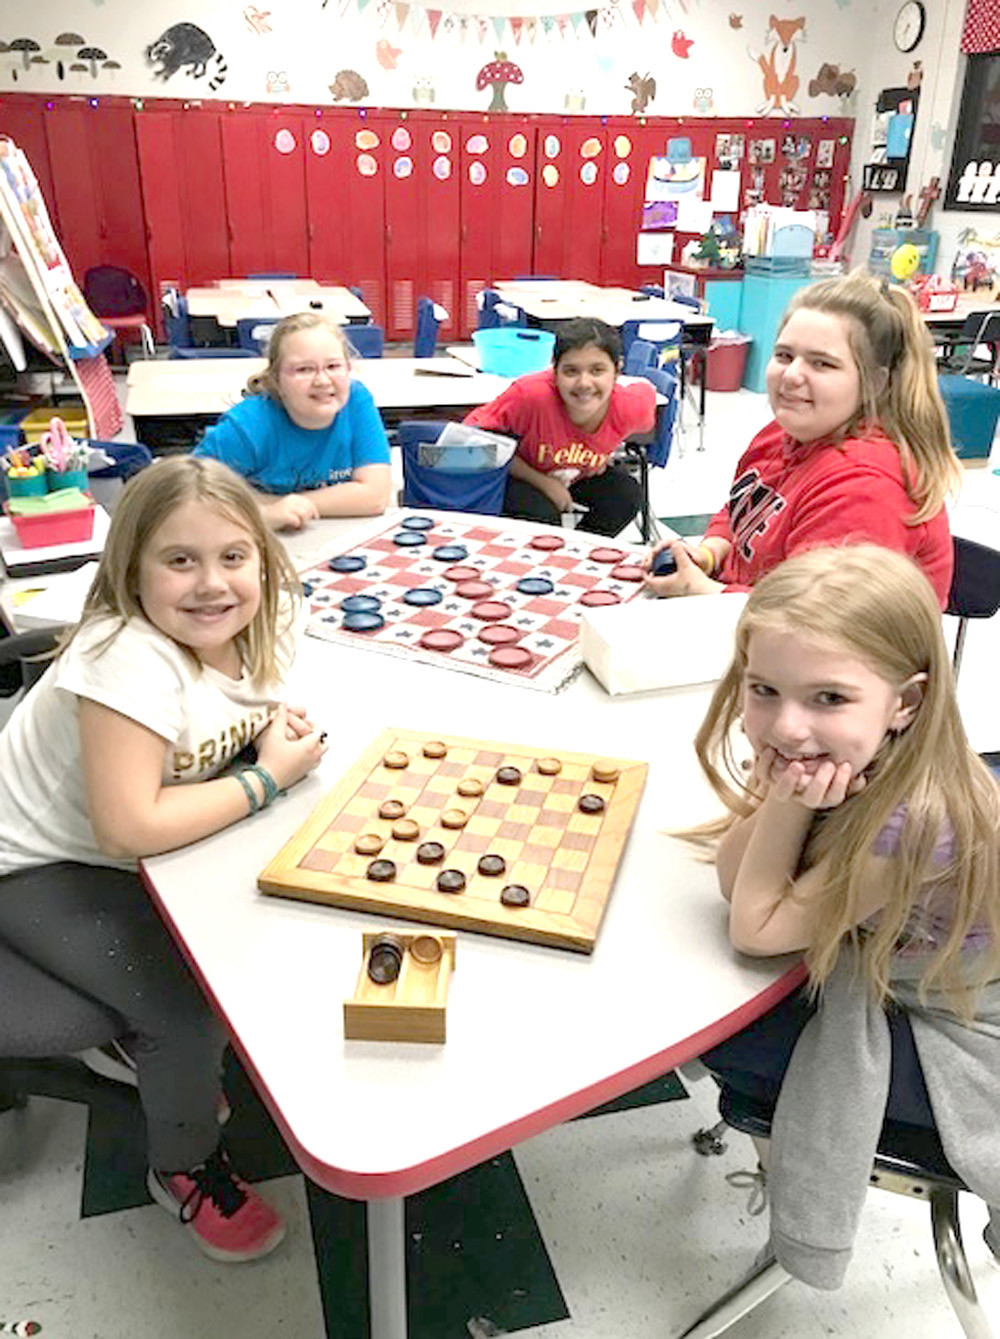 STUDENTS Jazlyn Murray, Kaitlyn Ledford, Aubrey Ledford, Brooke Wooten and Ana Elizondo play checkers during Oak Grove Elementary's Christmas event.